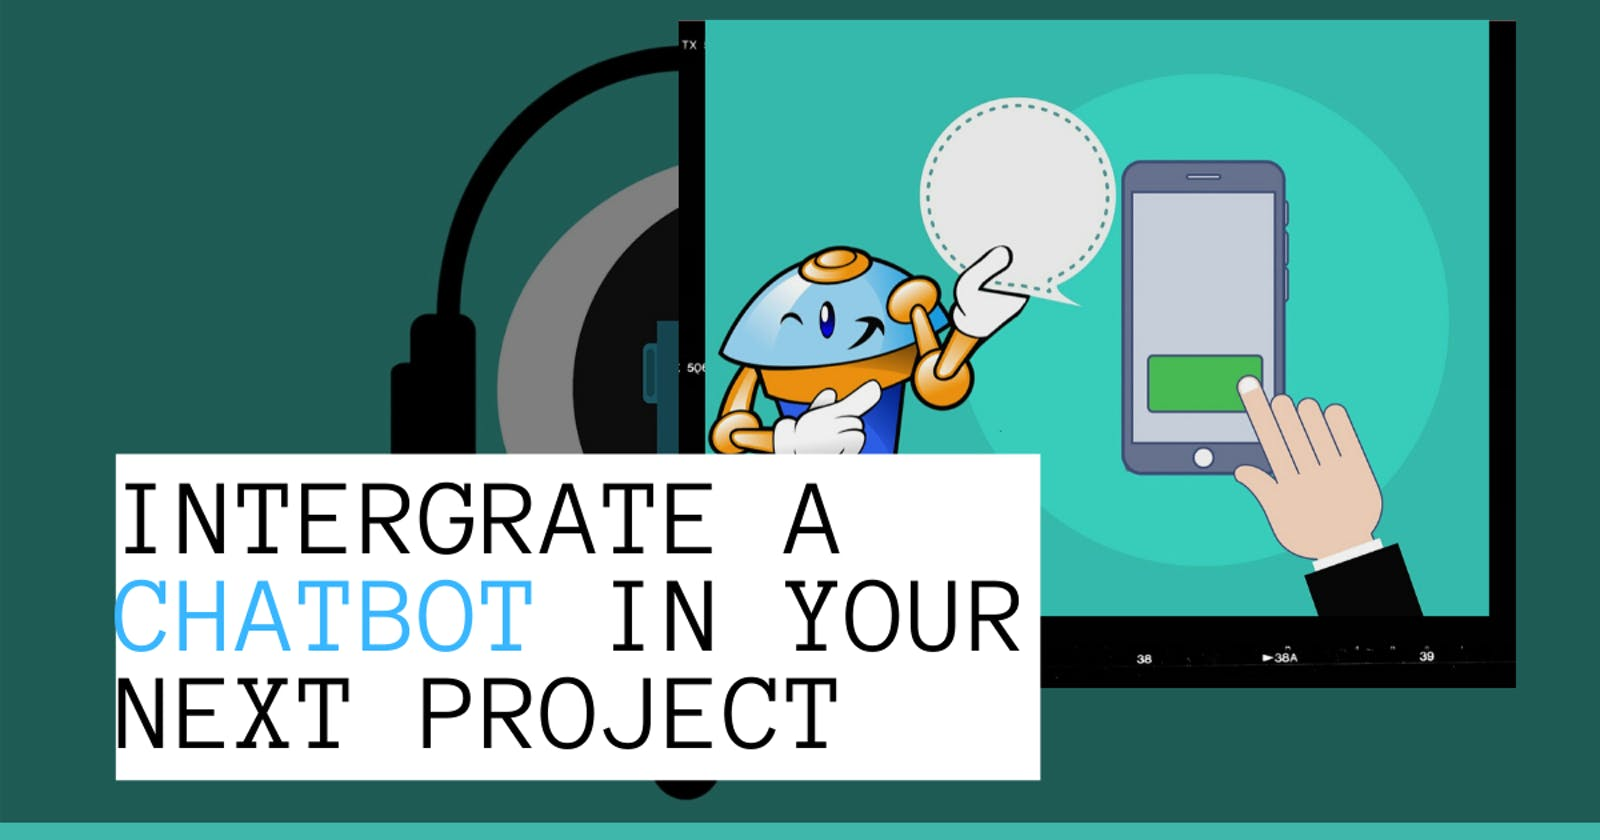 Integrating Chatbot into your next project